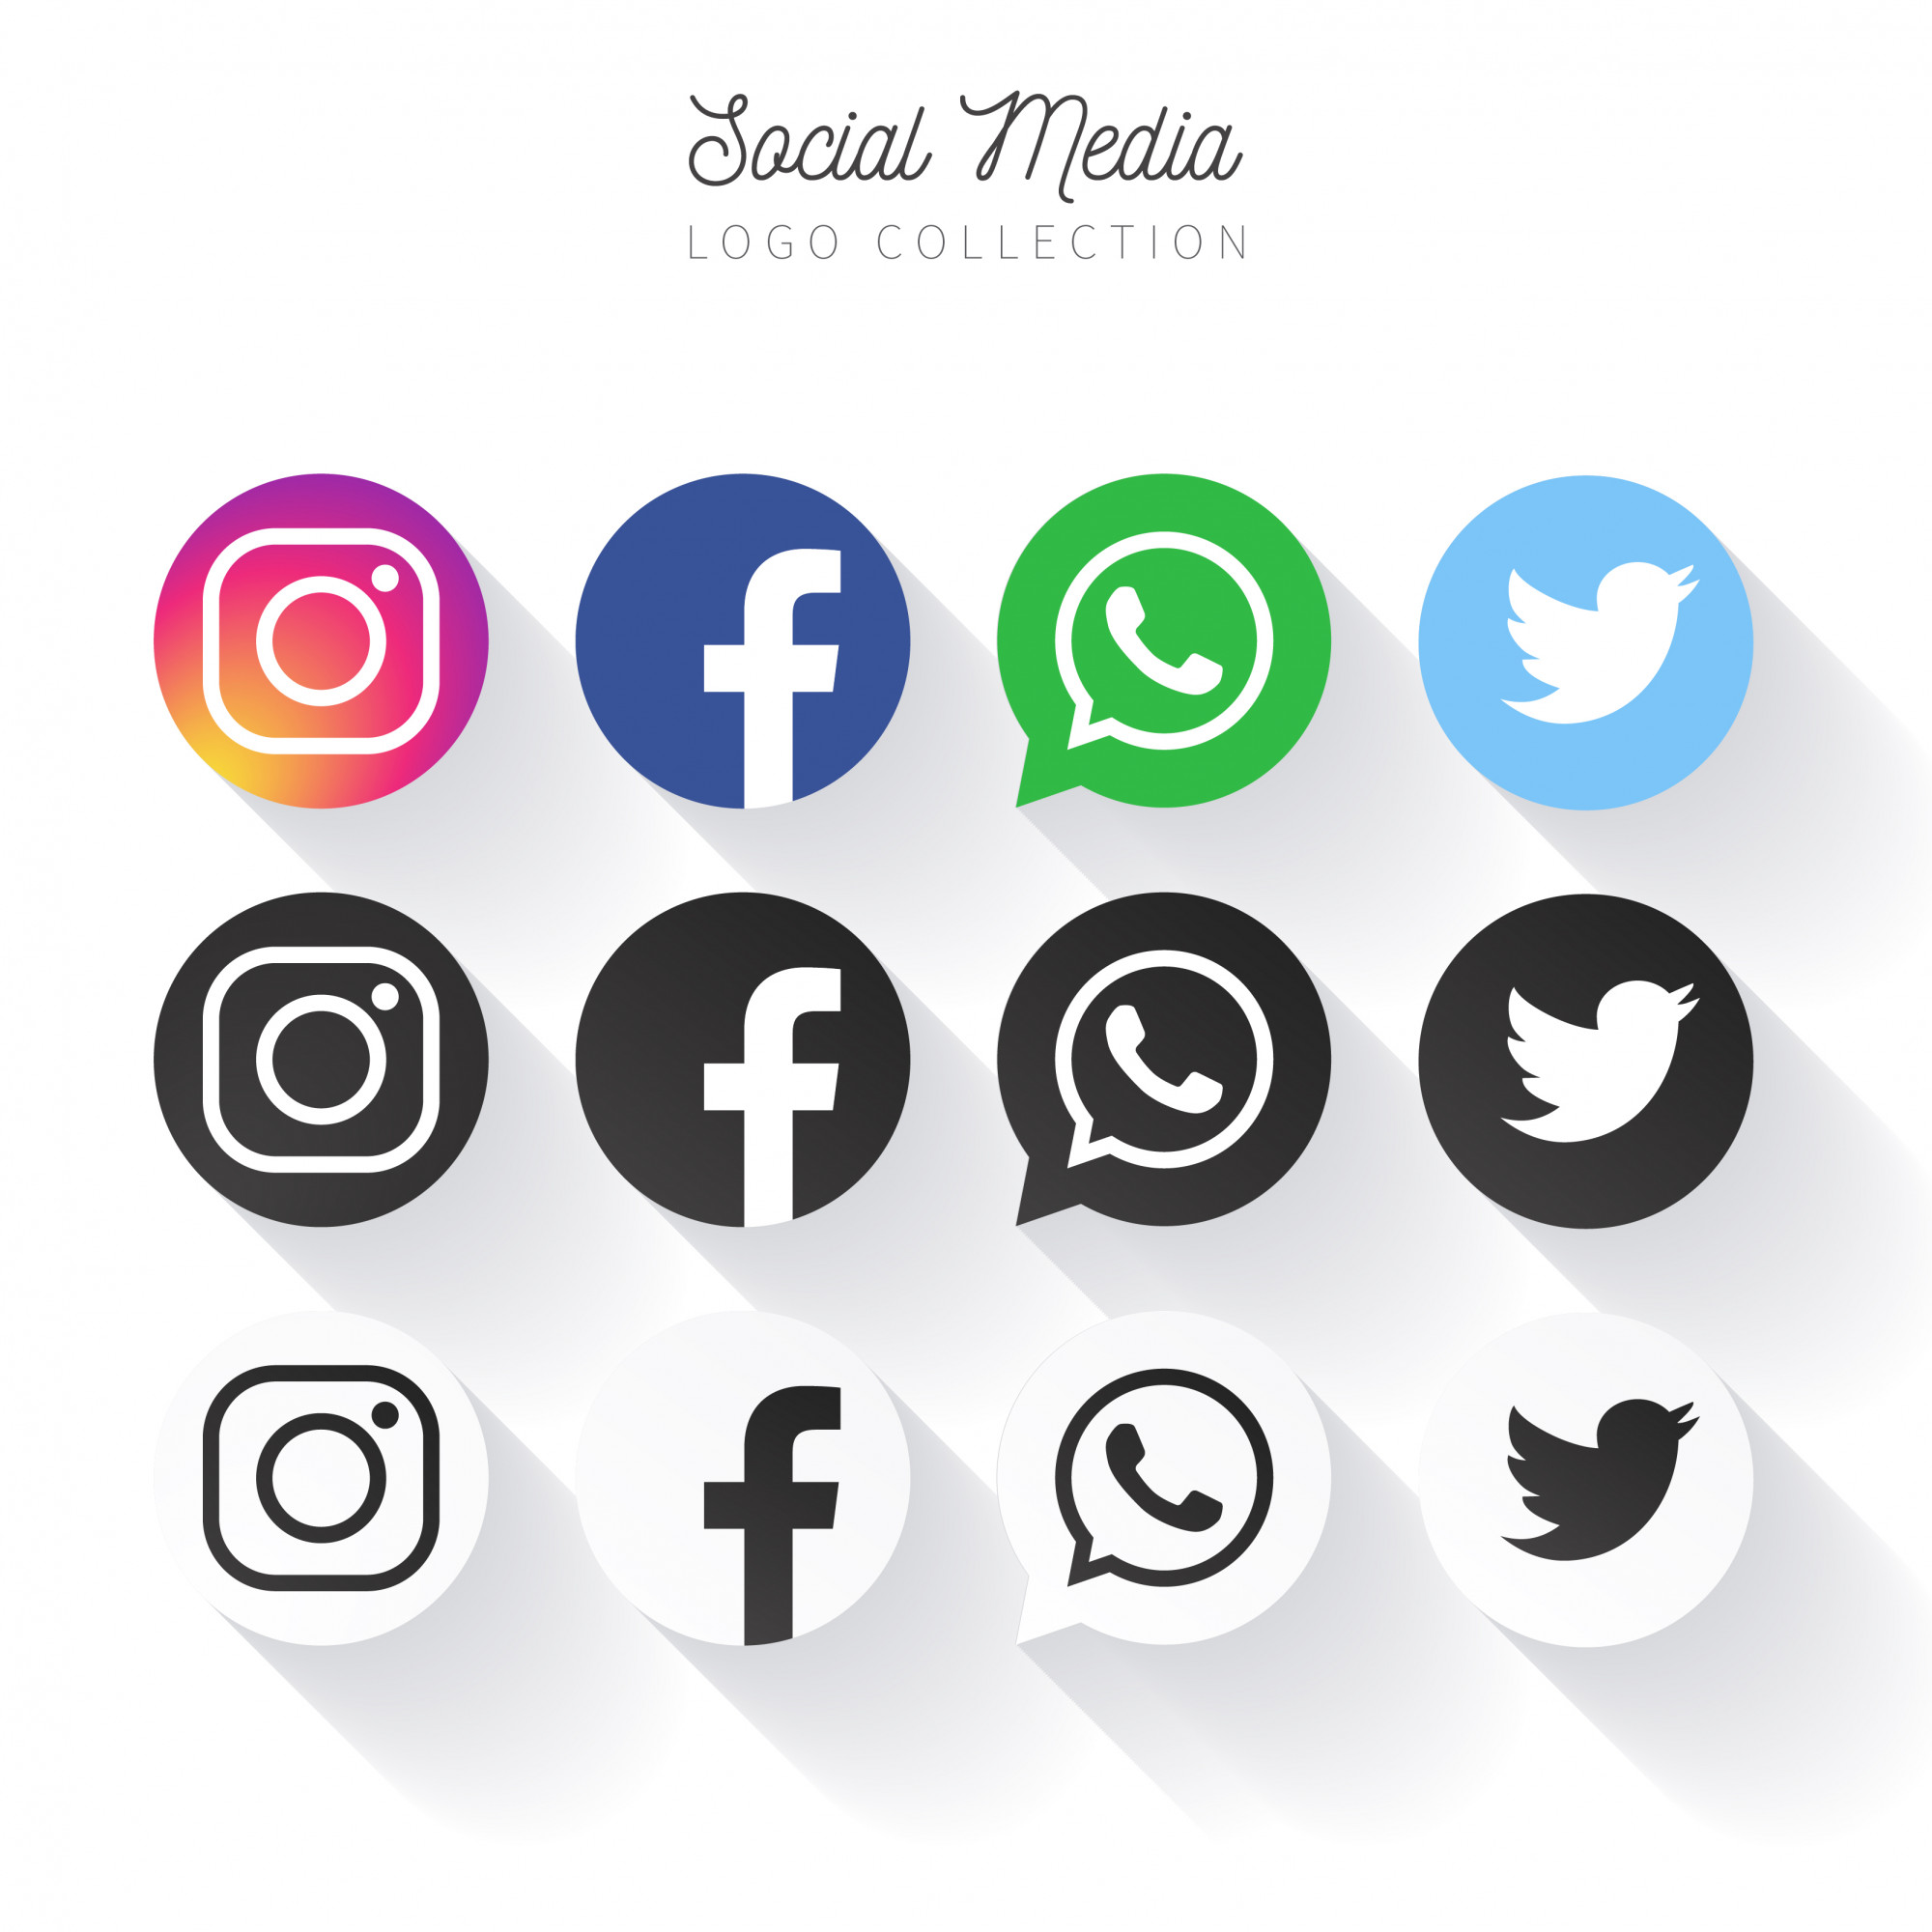 Populair Social Media Logo Collection in cirkels